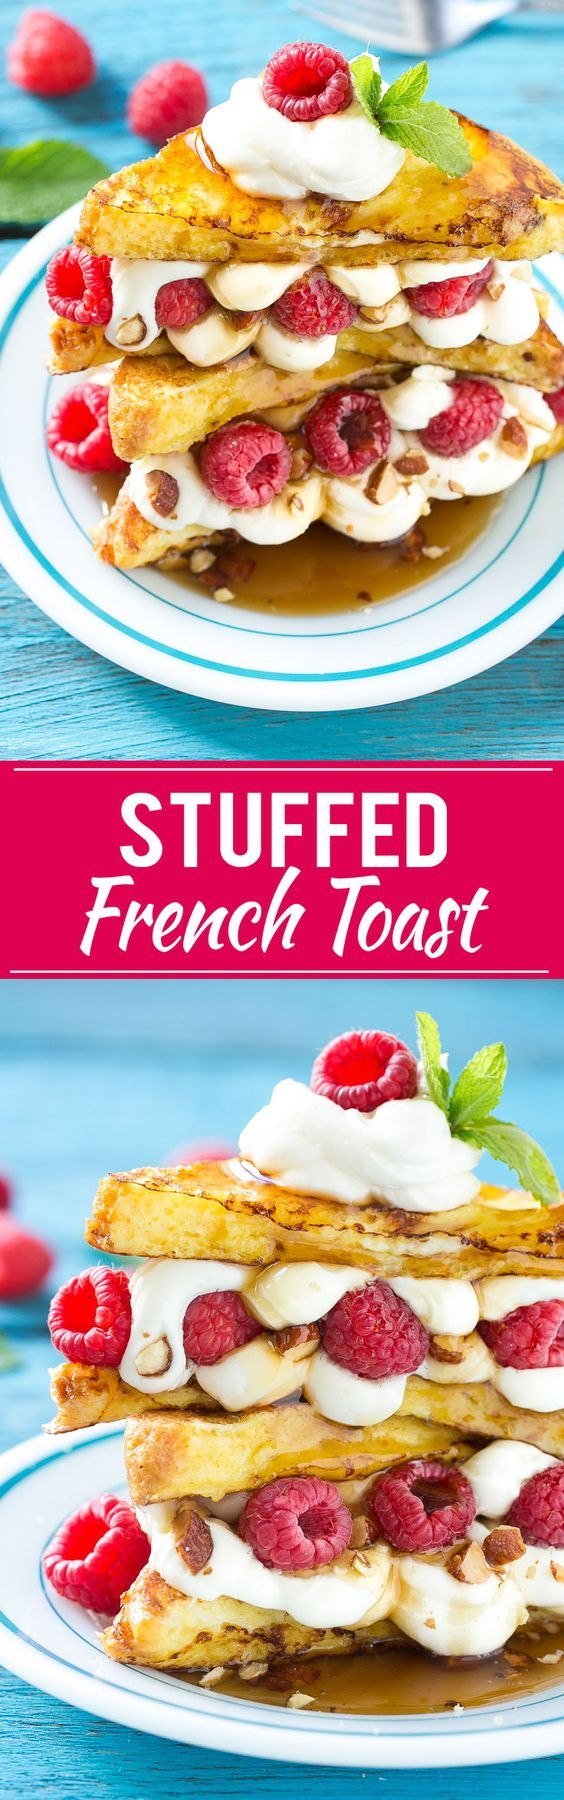 This recipe for cream cheese stuffed french toast is buttery brioche bread dipped in batter and cooked to a golden brown, then sandwiched with a delectable cream cheese, raspberry and almond filling. Finish this brunch delight with a drizzle of syrup and whipped cream for an unforgettable mid-day delight! #ad